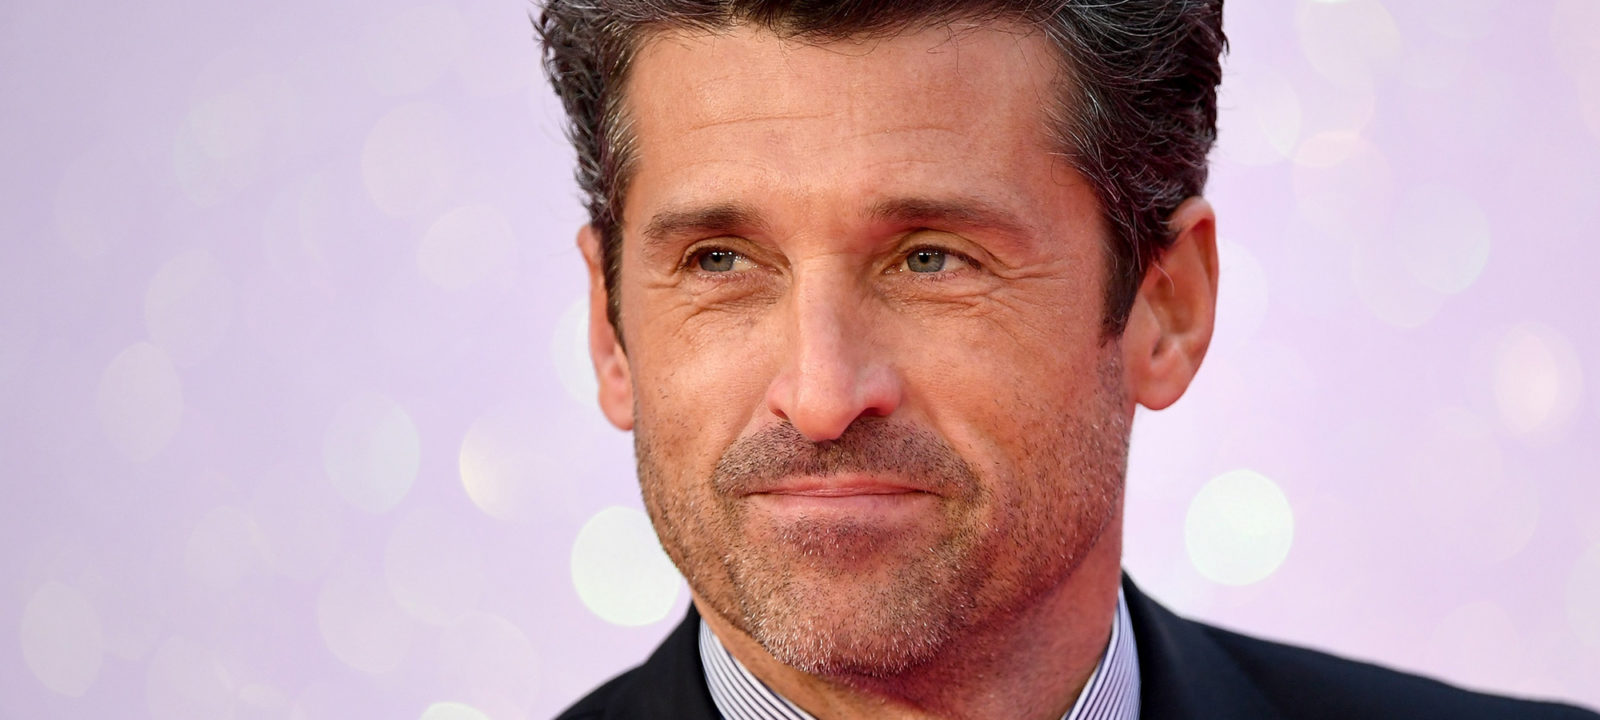 patrick dempsey s returning to tv for harry quebert mystery thriller series anglophenia bbc. Black Bedroom Furniture Sets. Home Design Ideas